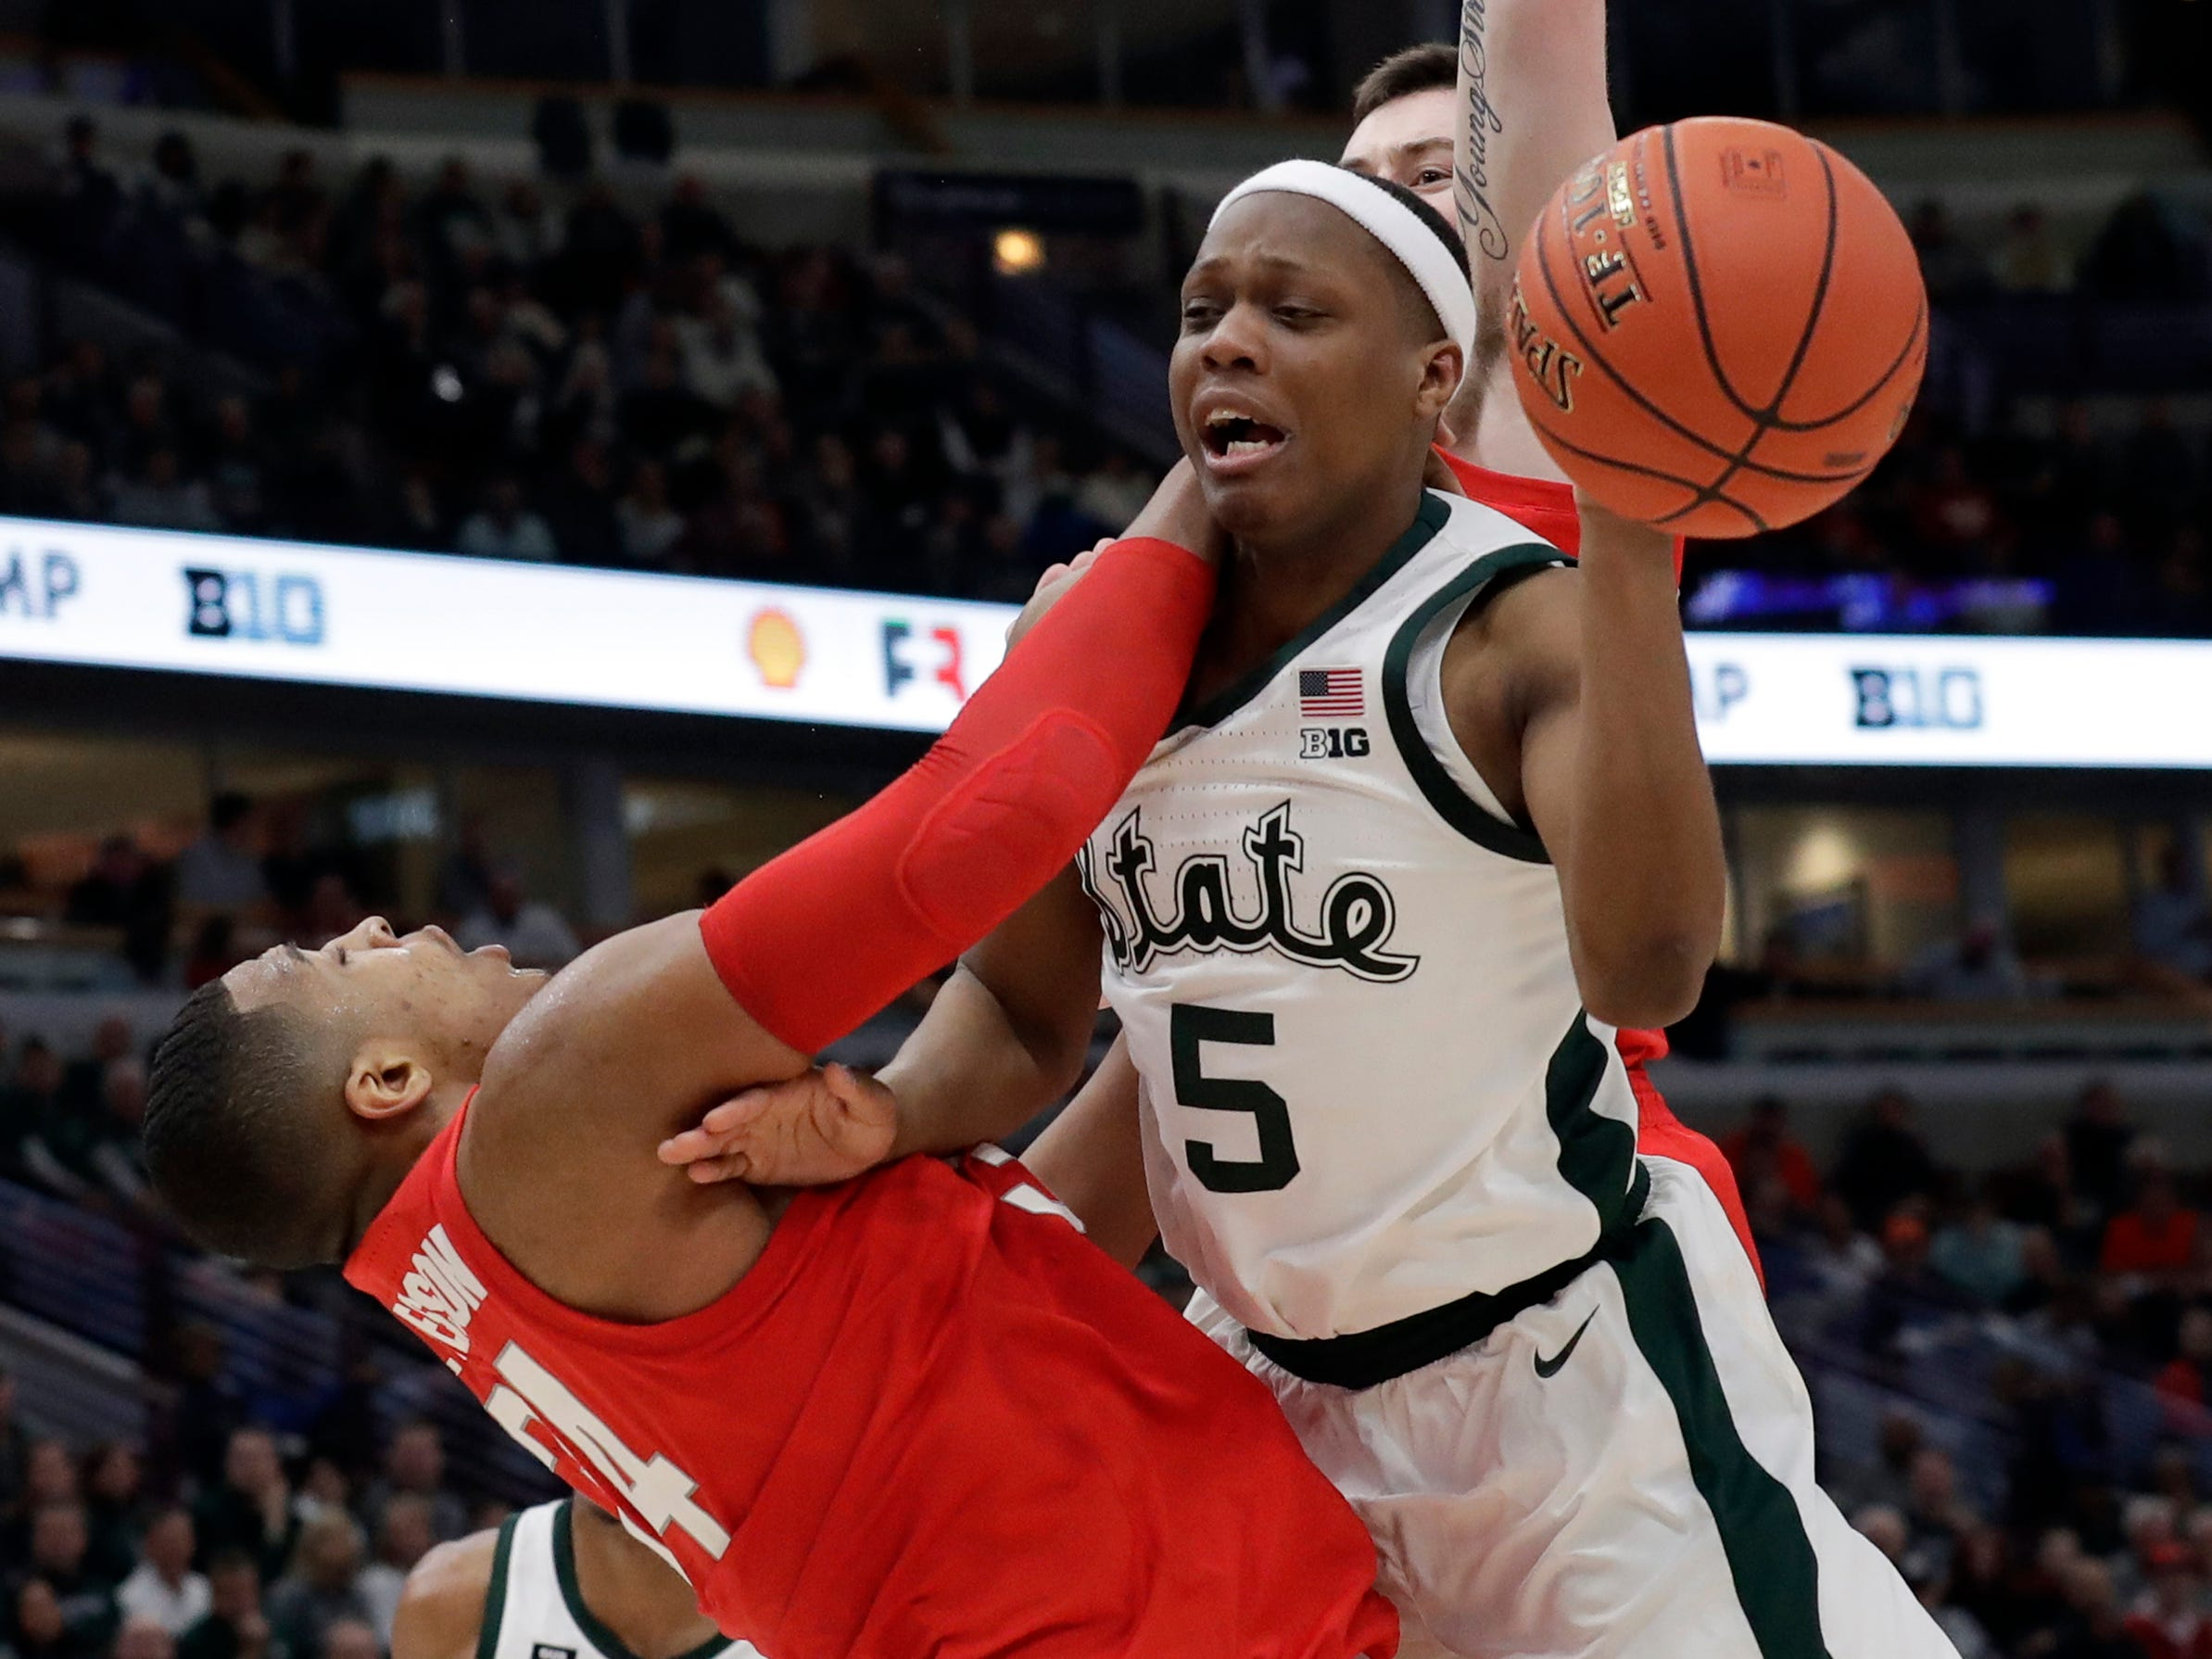 Michigan State's Cassius Winston (5) is drives against Ohio State's Andre Wesson (24) during the second half.